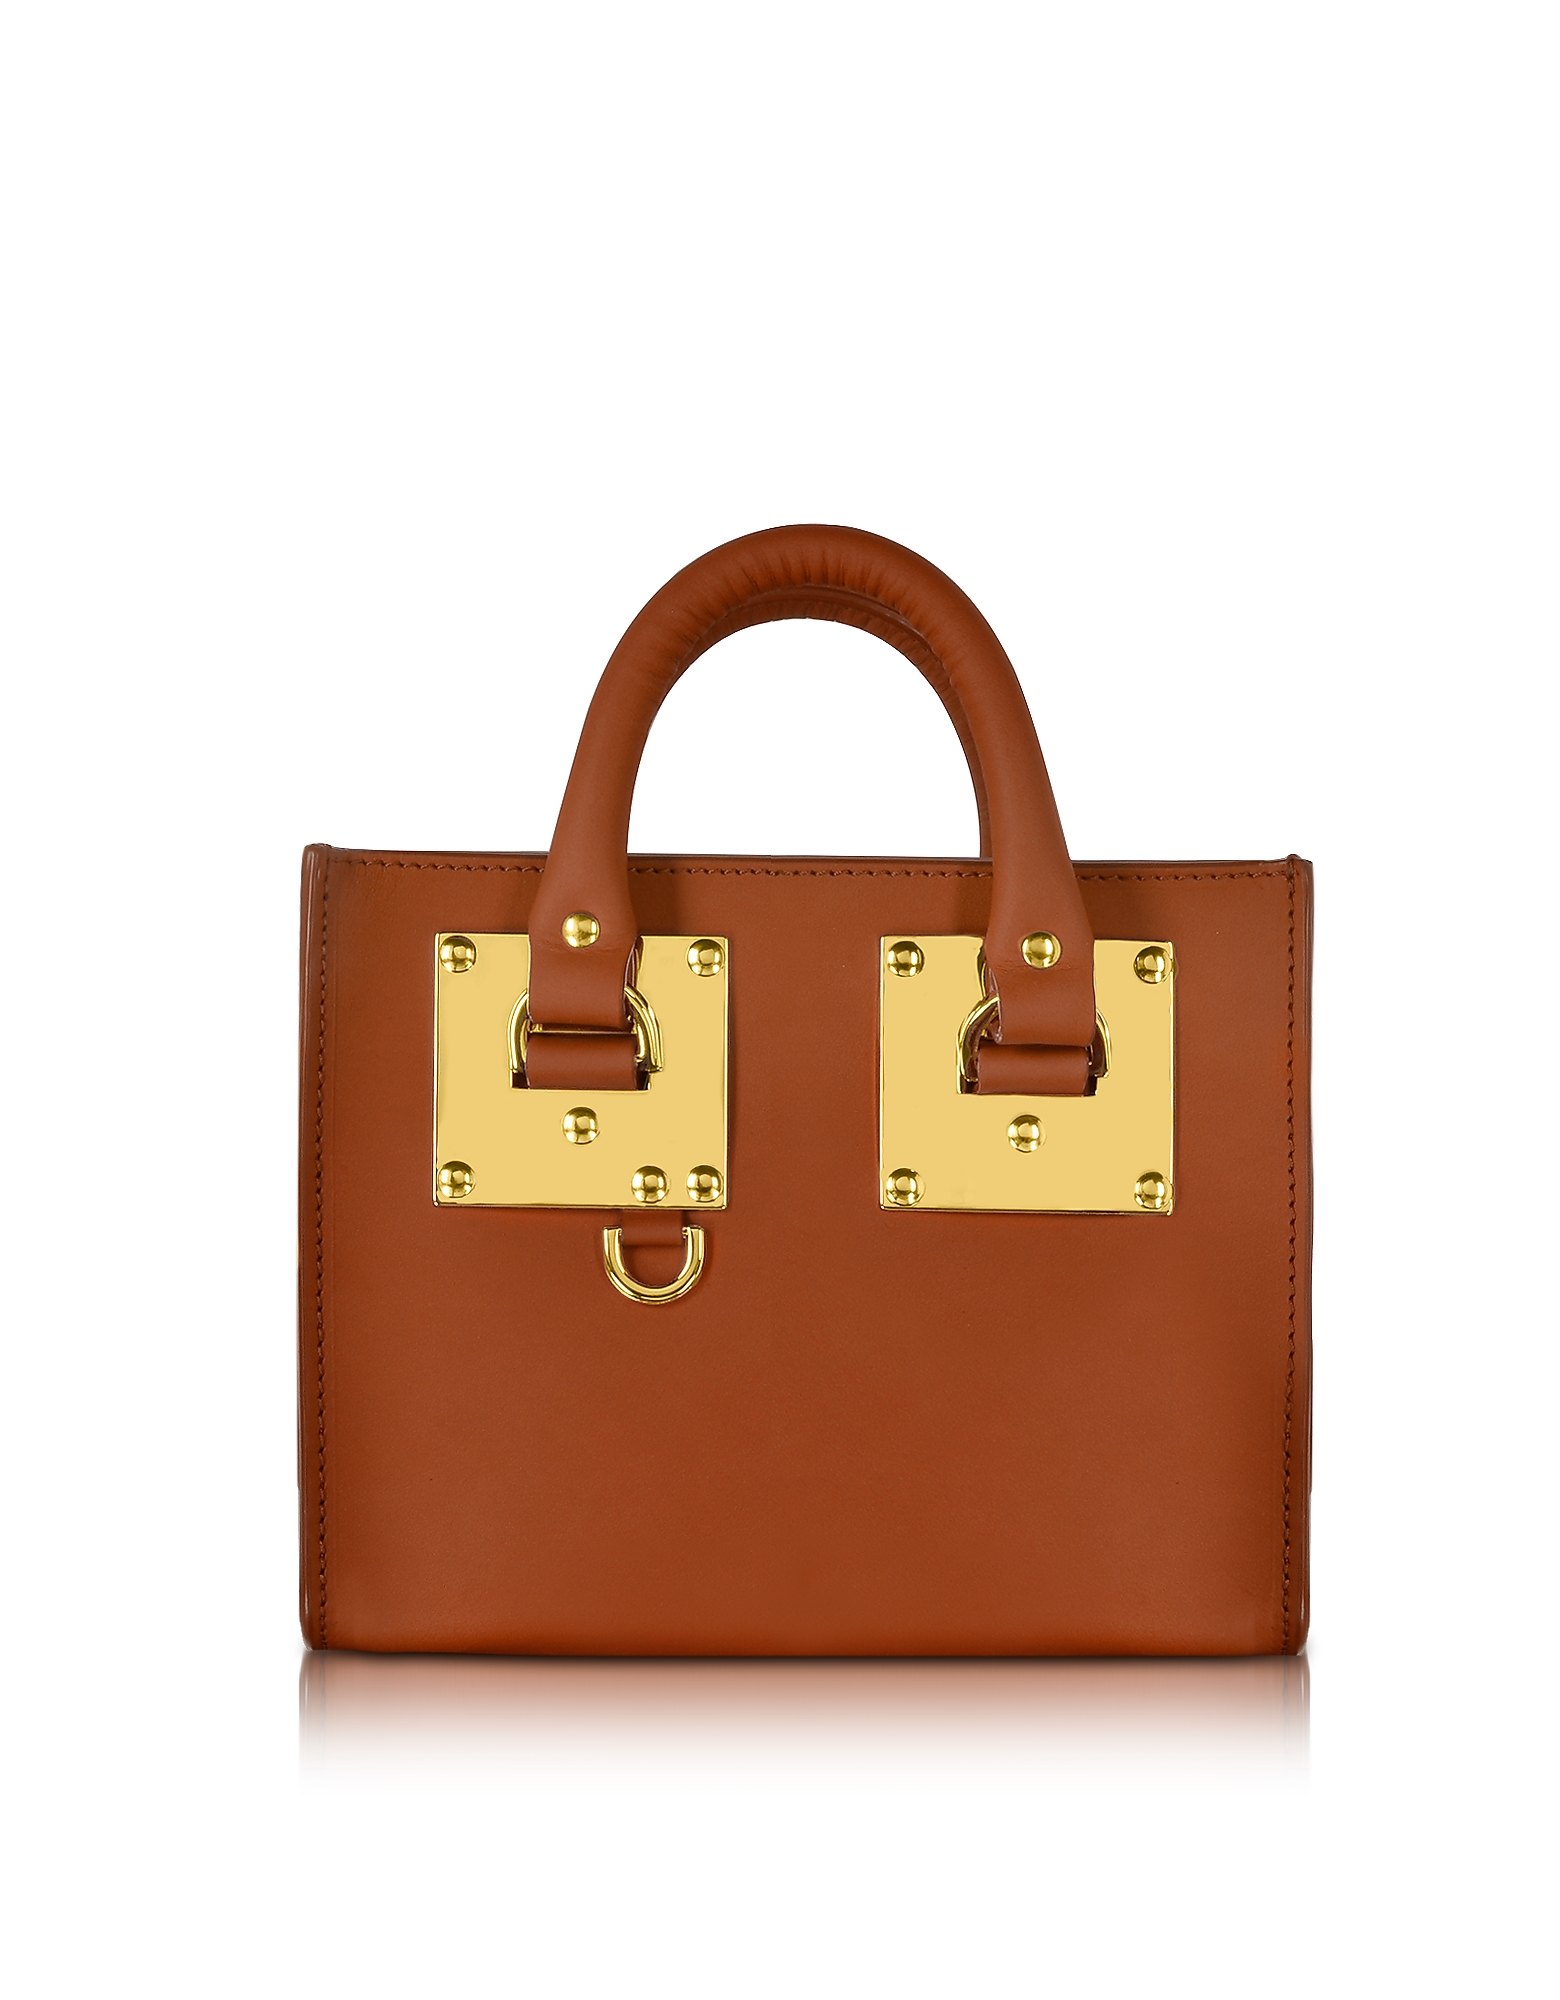 Sophie Hulme Handbags, Tan Saddle Leather Albion Box Tote Bag